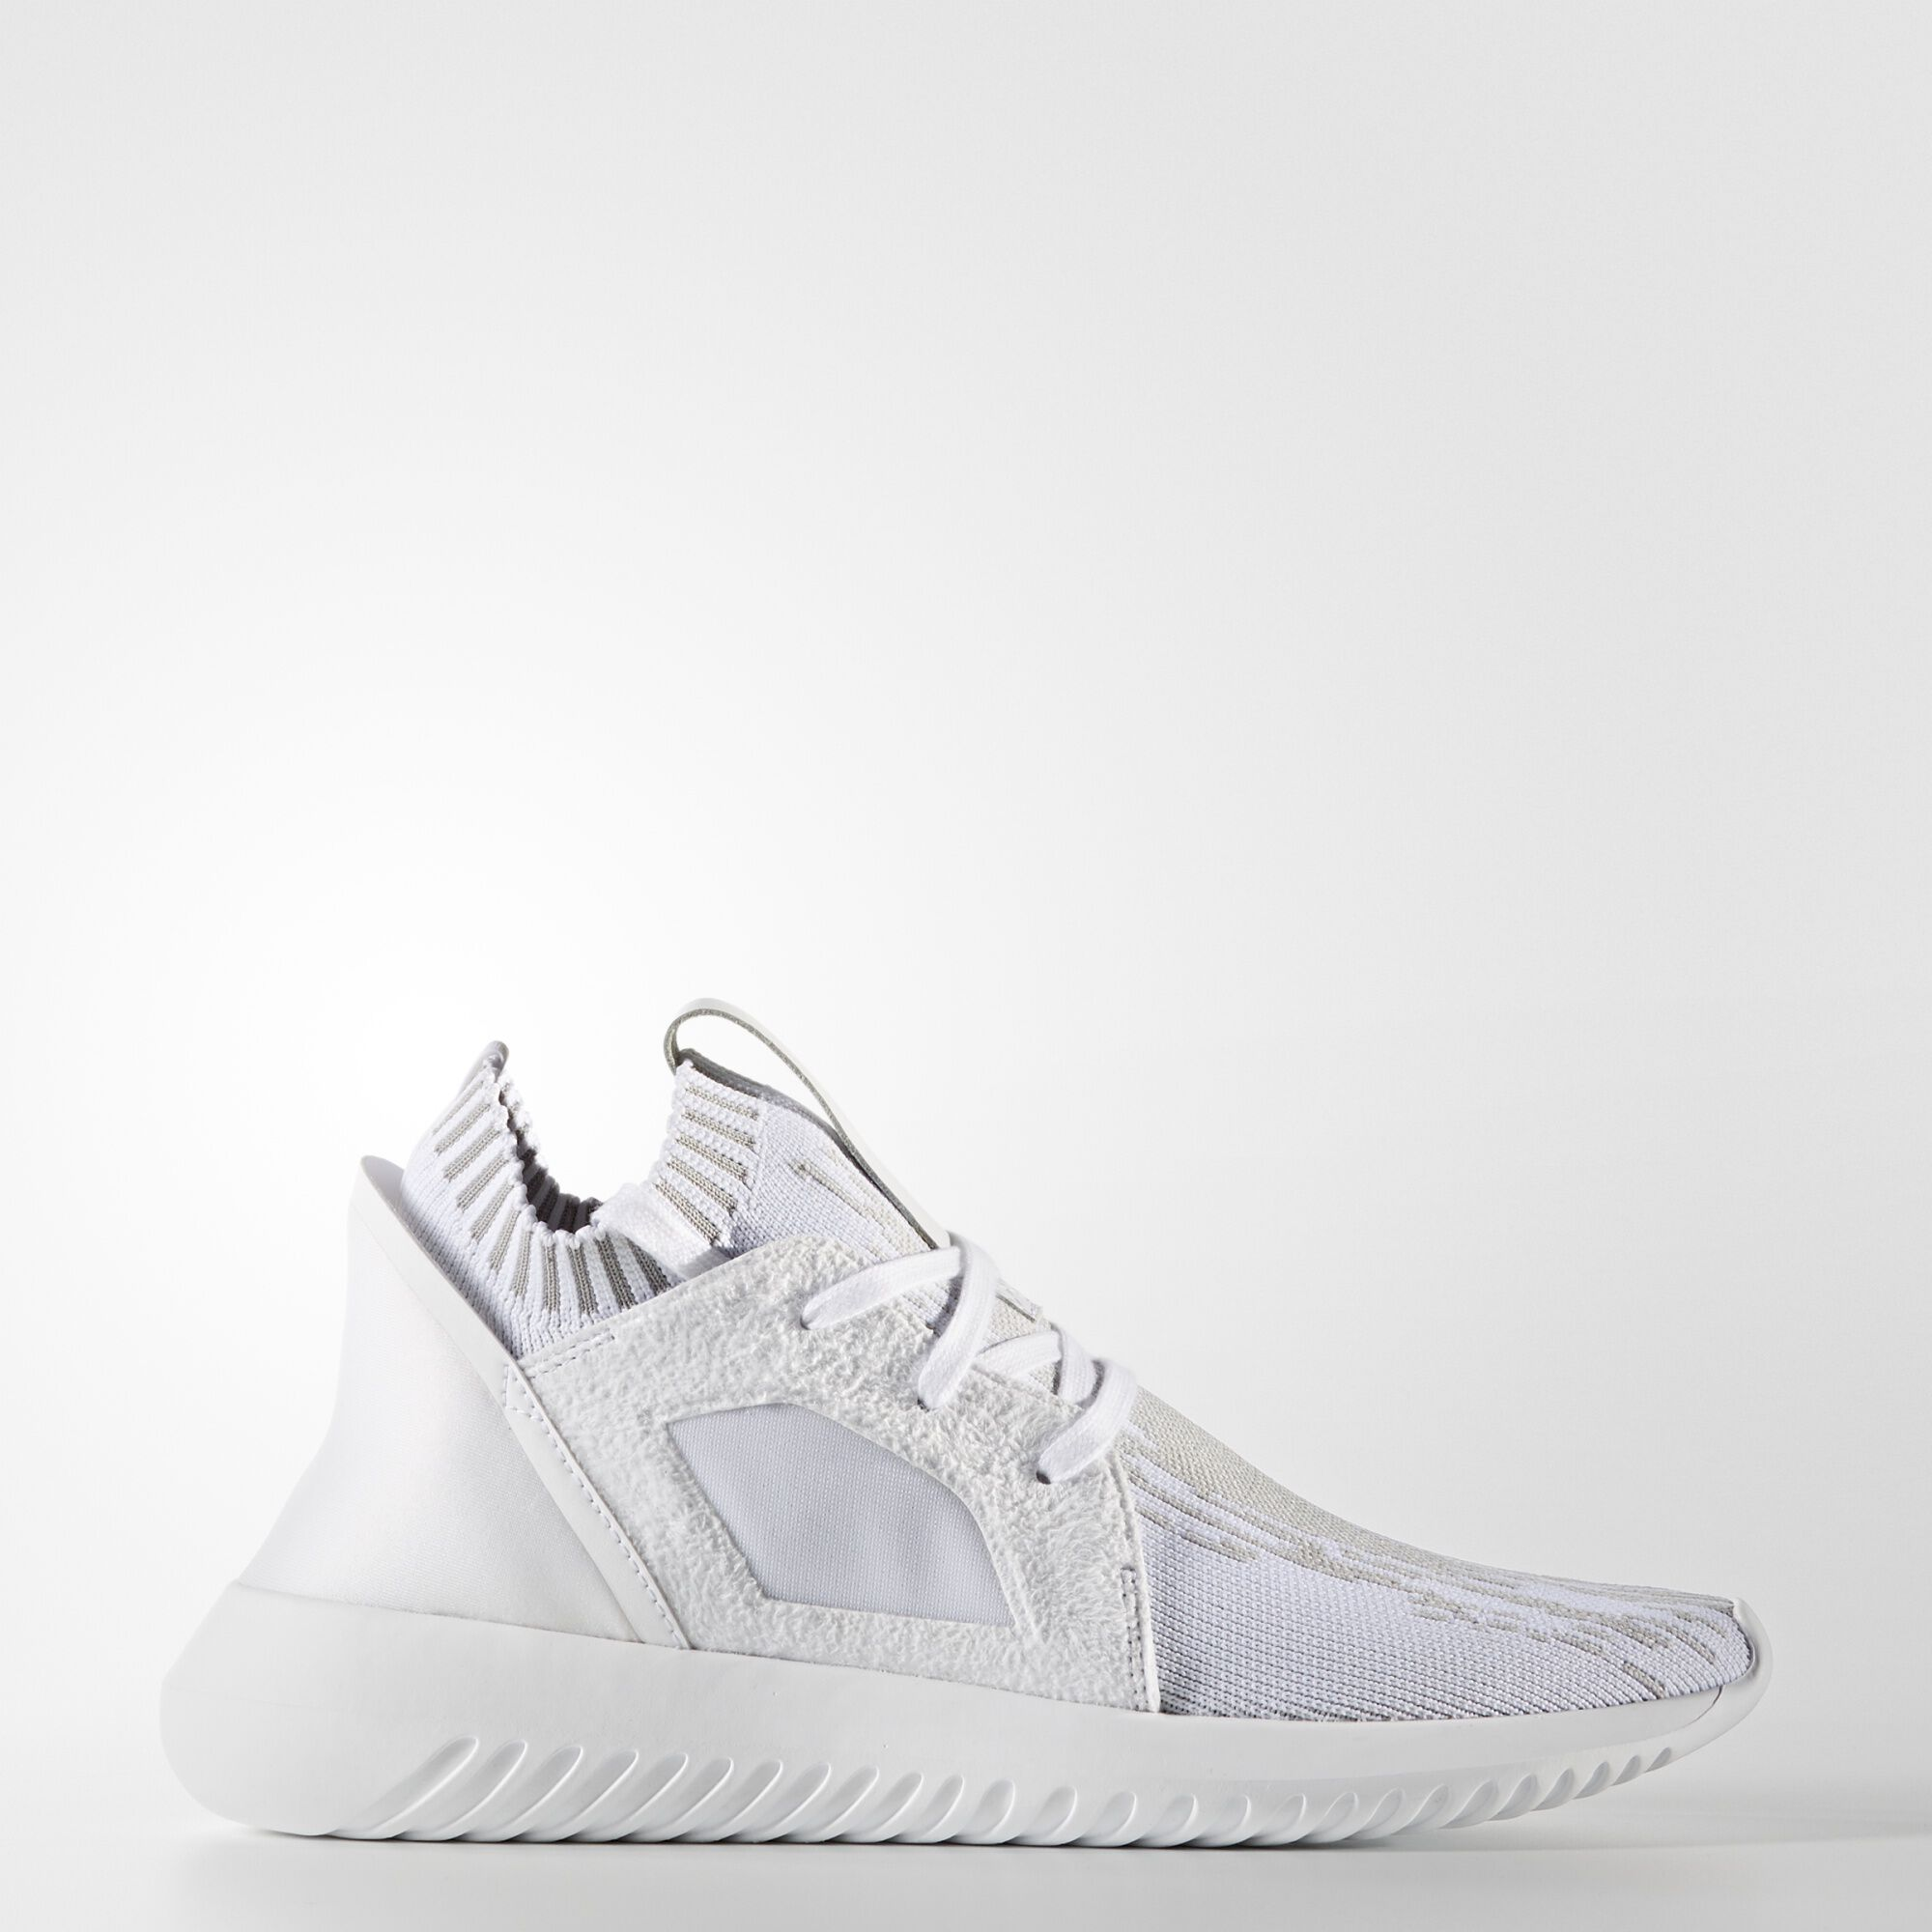 Adidas Tubular Radial (Pink Sole) Sz. 11 for sale in Dallas, TX